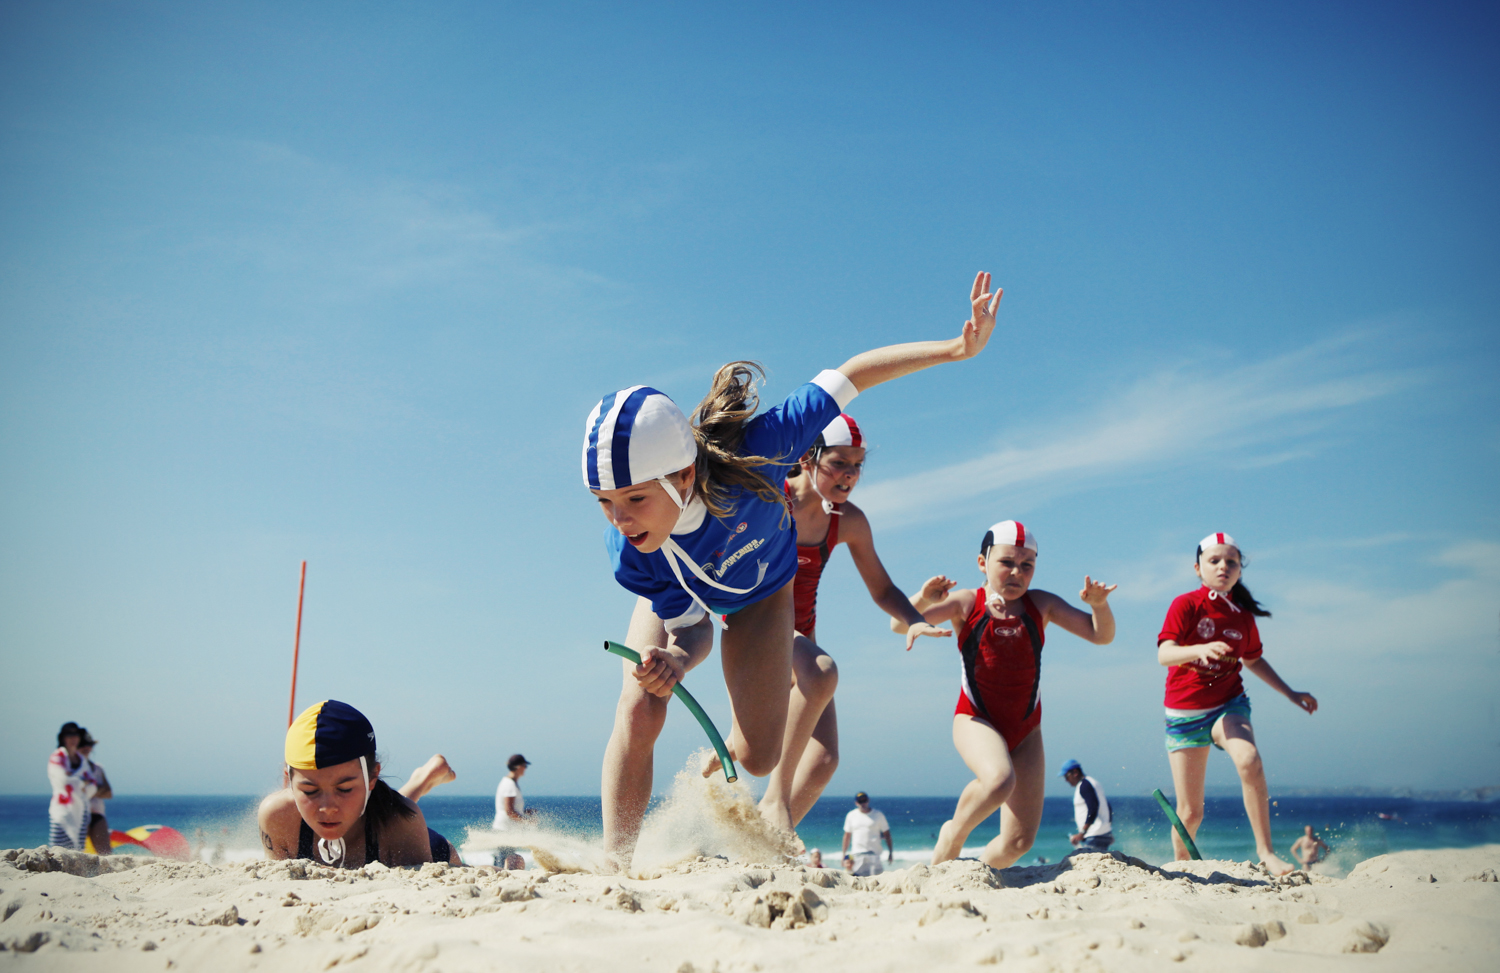 Nippers_Surf_Life_Saving_Bondi_Beach.09.jpeg